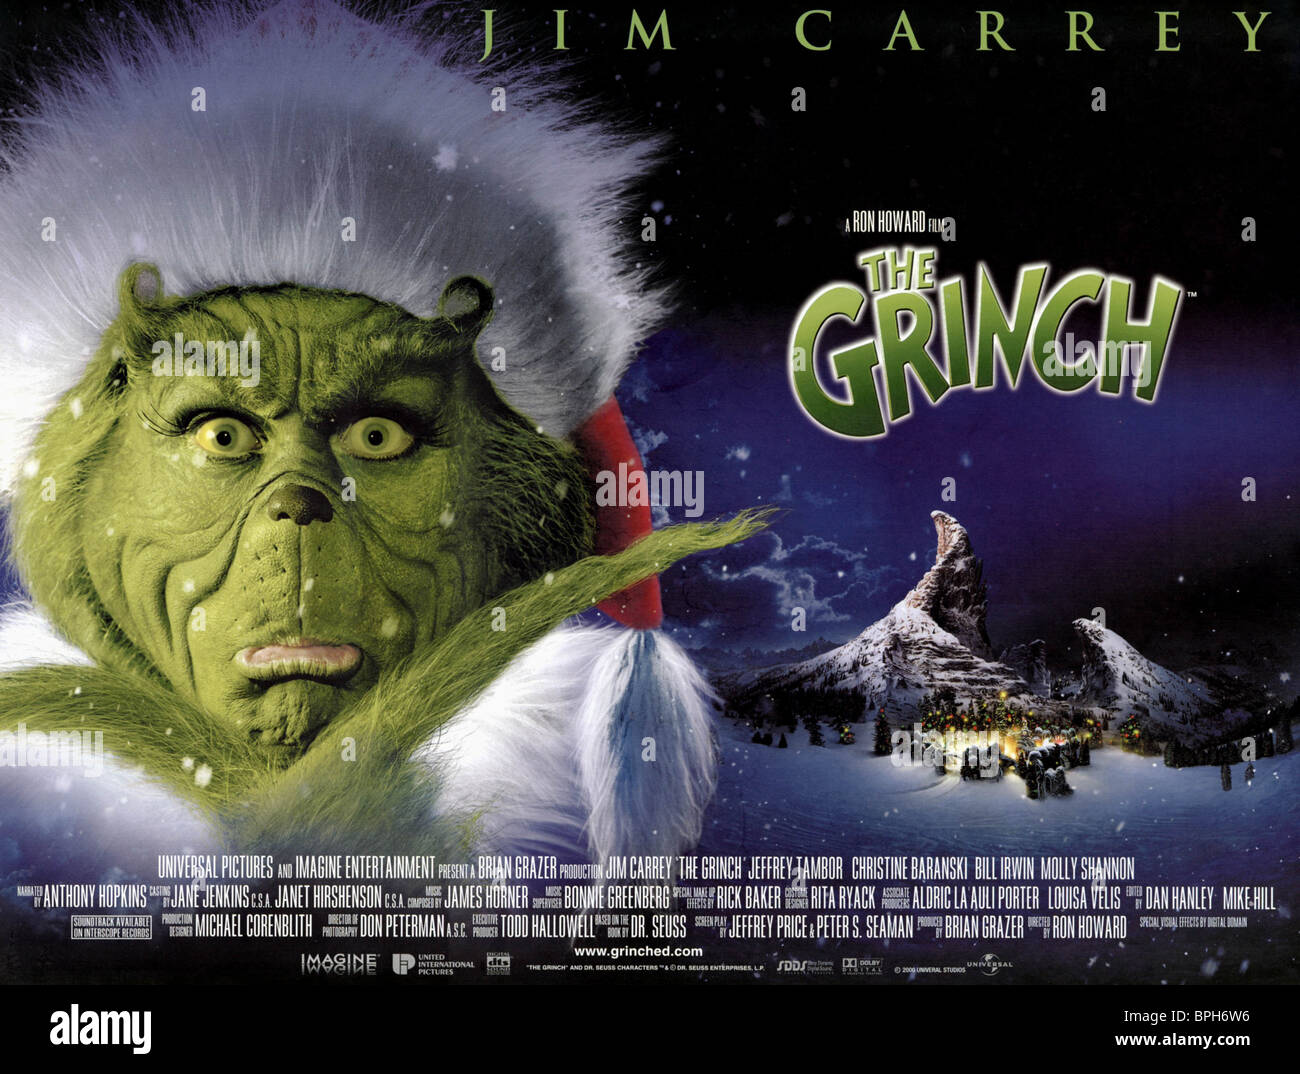 How The Grinch Stole Christmas Movie Poster.Jim Carrey Poster How The Grinch Stole Christmas 2000 Stock